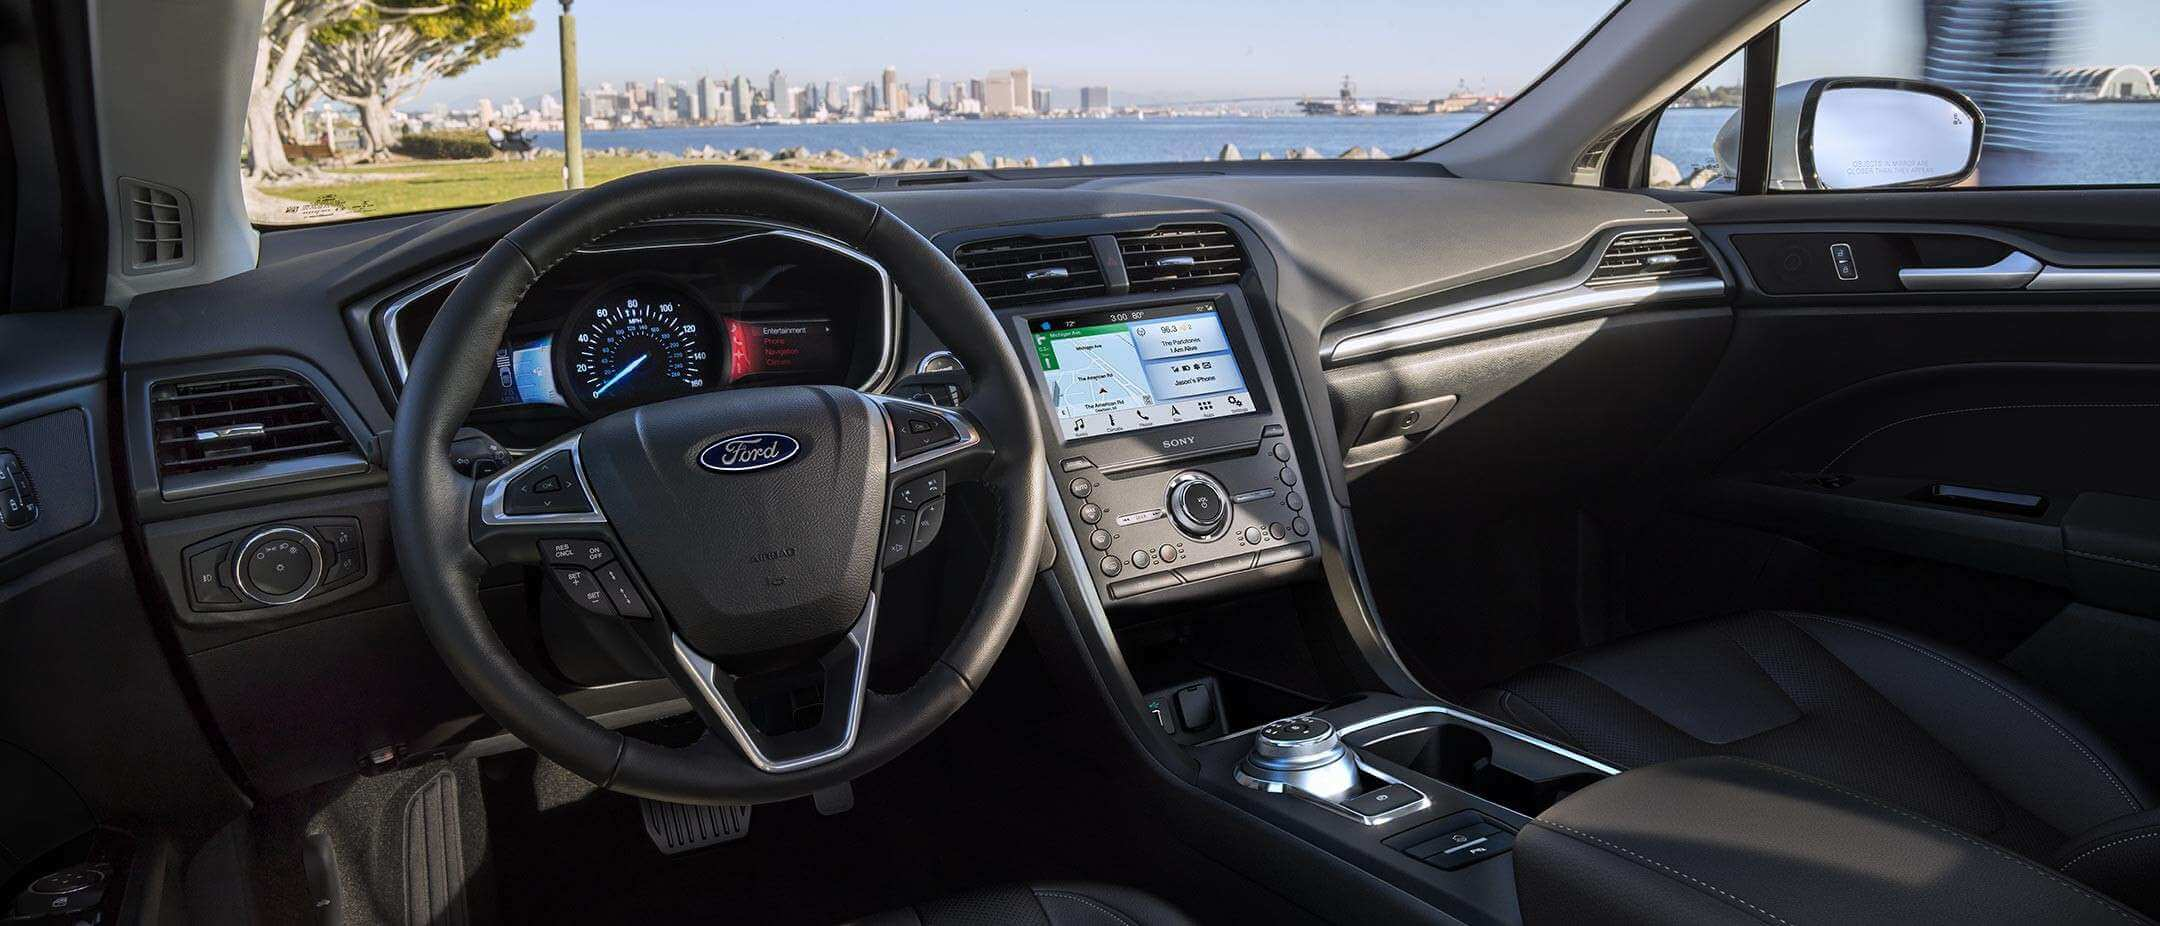 New 2019 Ford Fusion Slip Behind The Wheel Let The Fusion Do The Rest